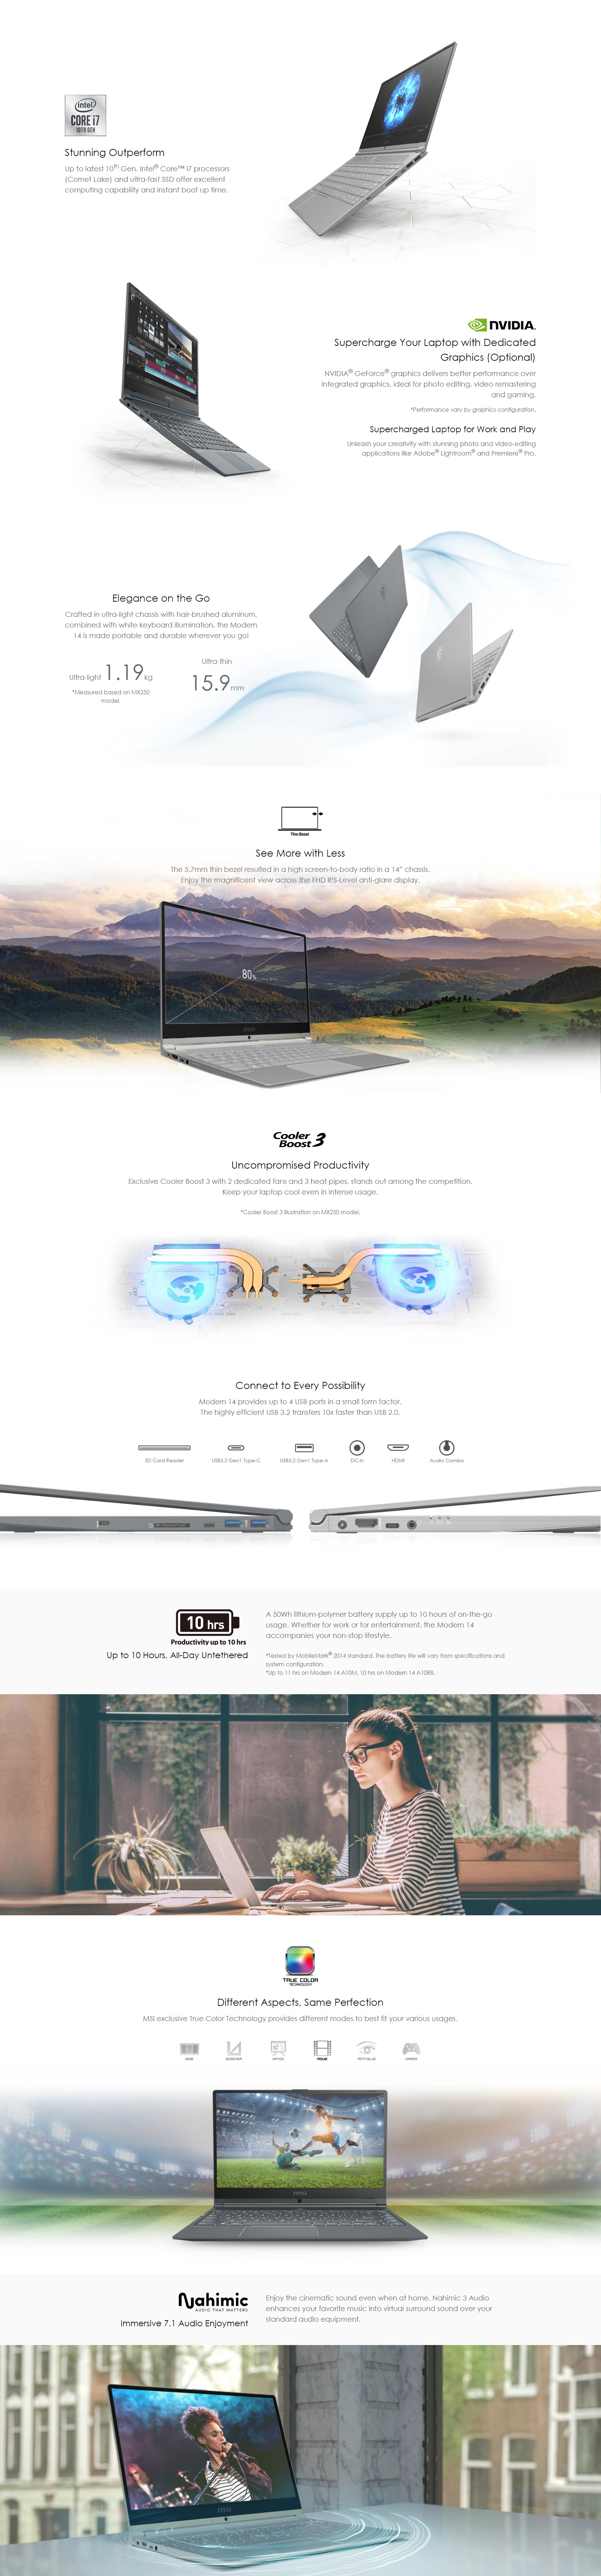 """A large marketing image providing additional information about the product MSI Modern 14 A10M-457AU 14"""" i5 Windows 10 Notebook - Additional alt info not provided"""